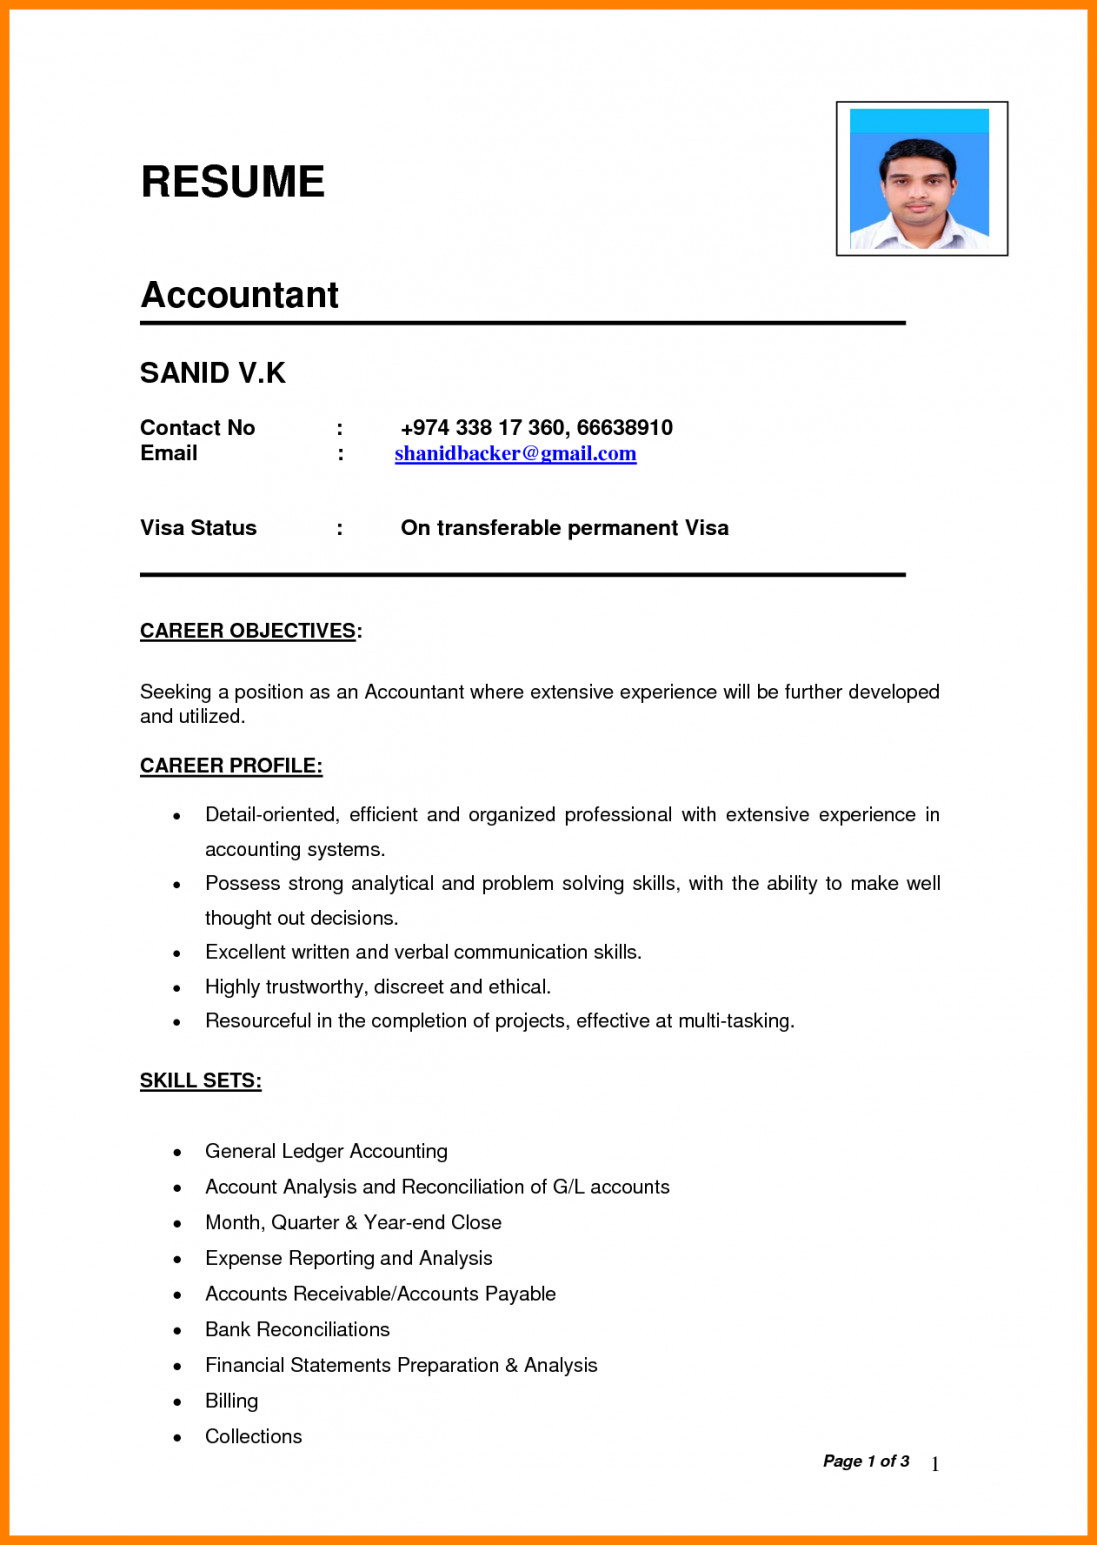 perfect resume sample pdf template builder example for job application cv great objective Resume Resume For Job Application Pdf